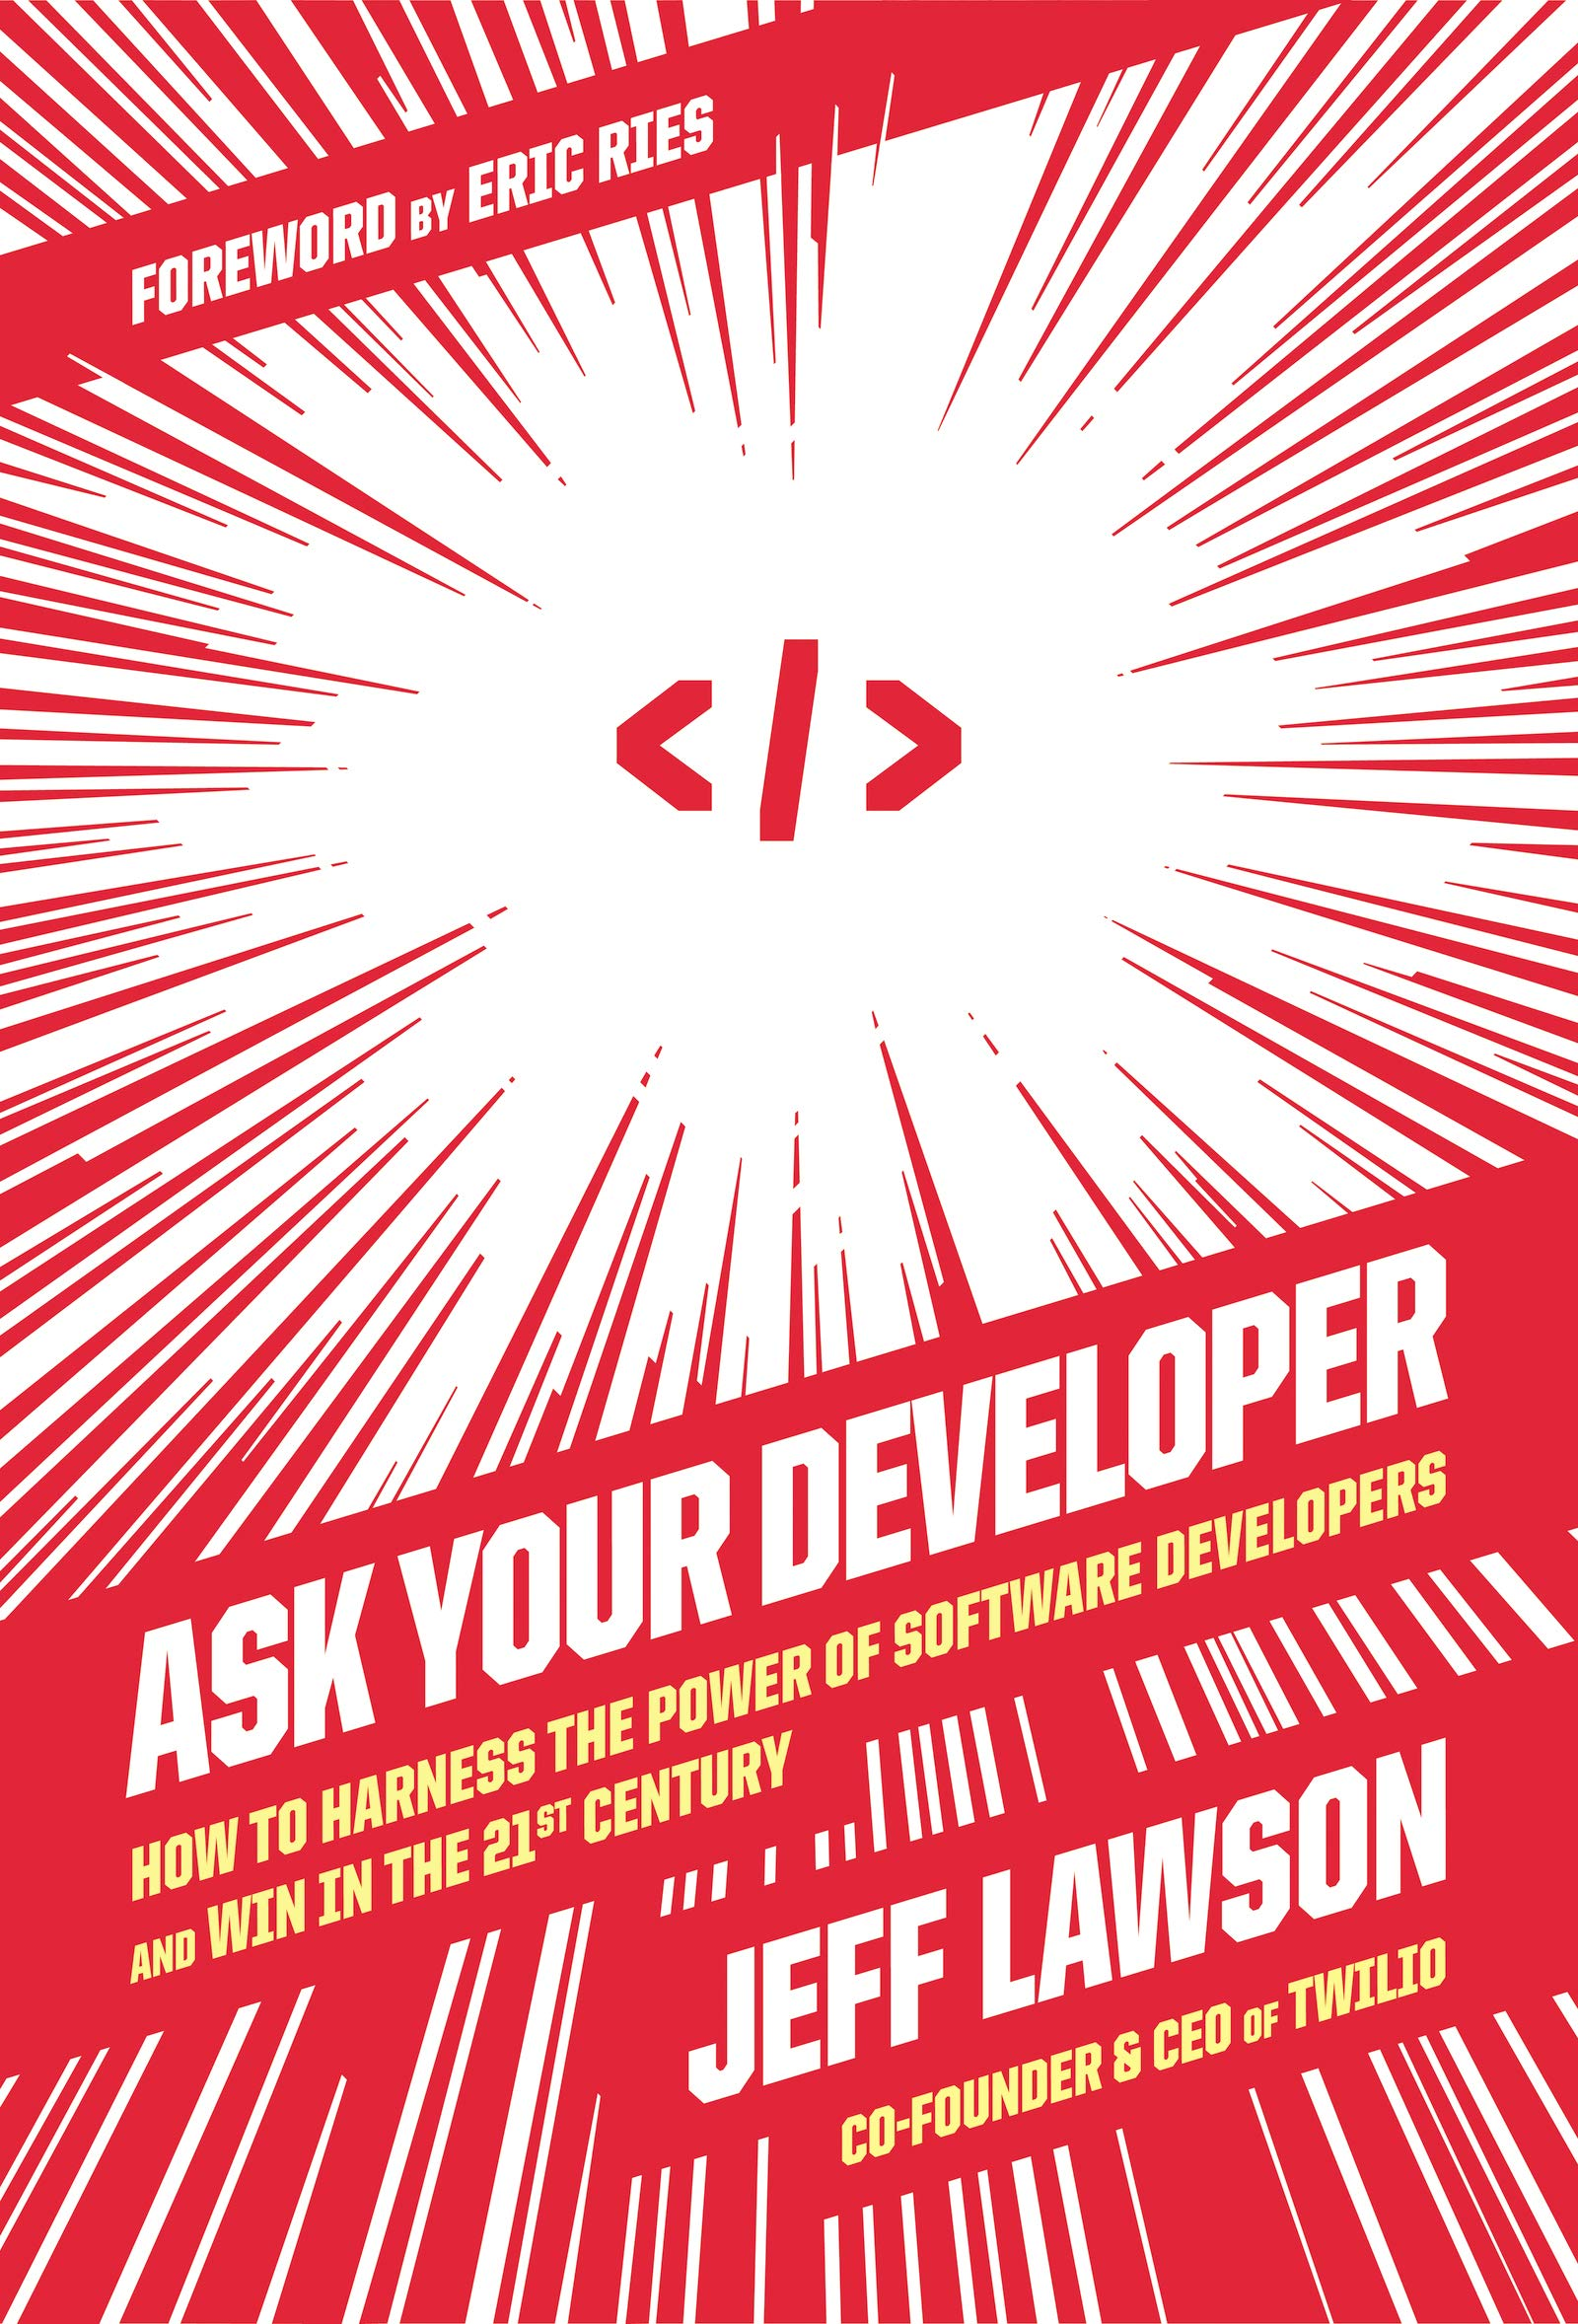 Ask Your Developer How To Harness The Power Of Software Developers And Win In The 21st Century Lawson Jeff 9780063018297 Amazon Com Books